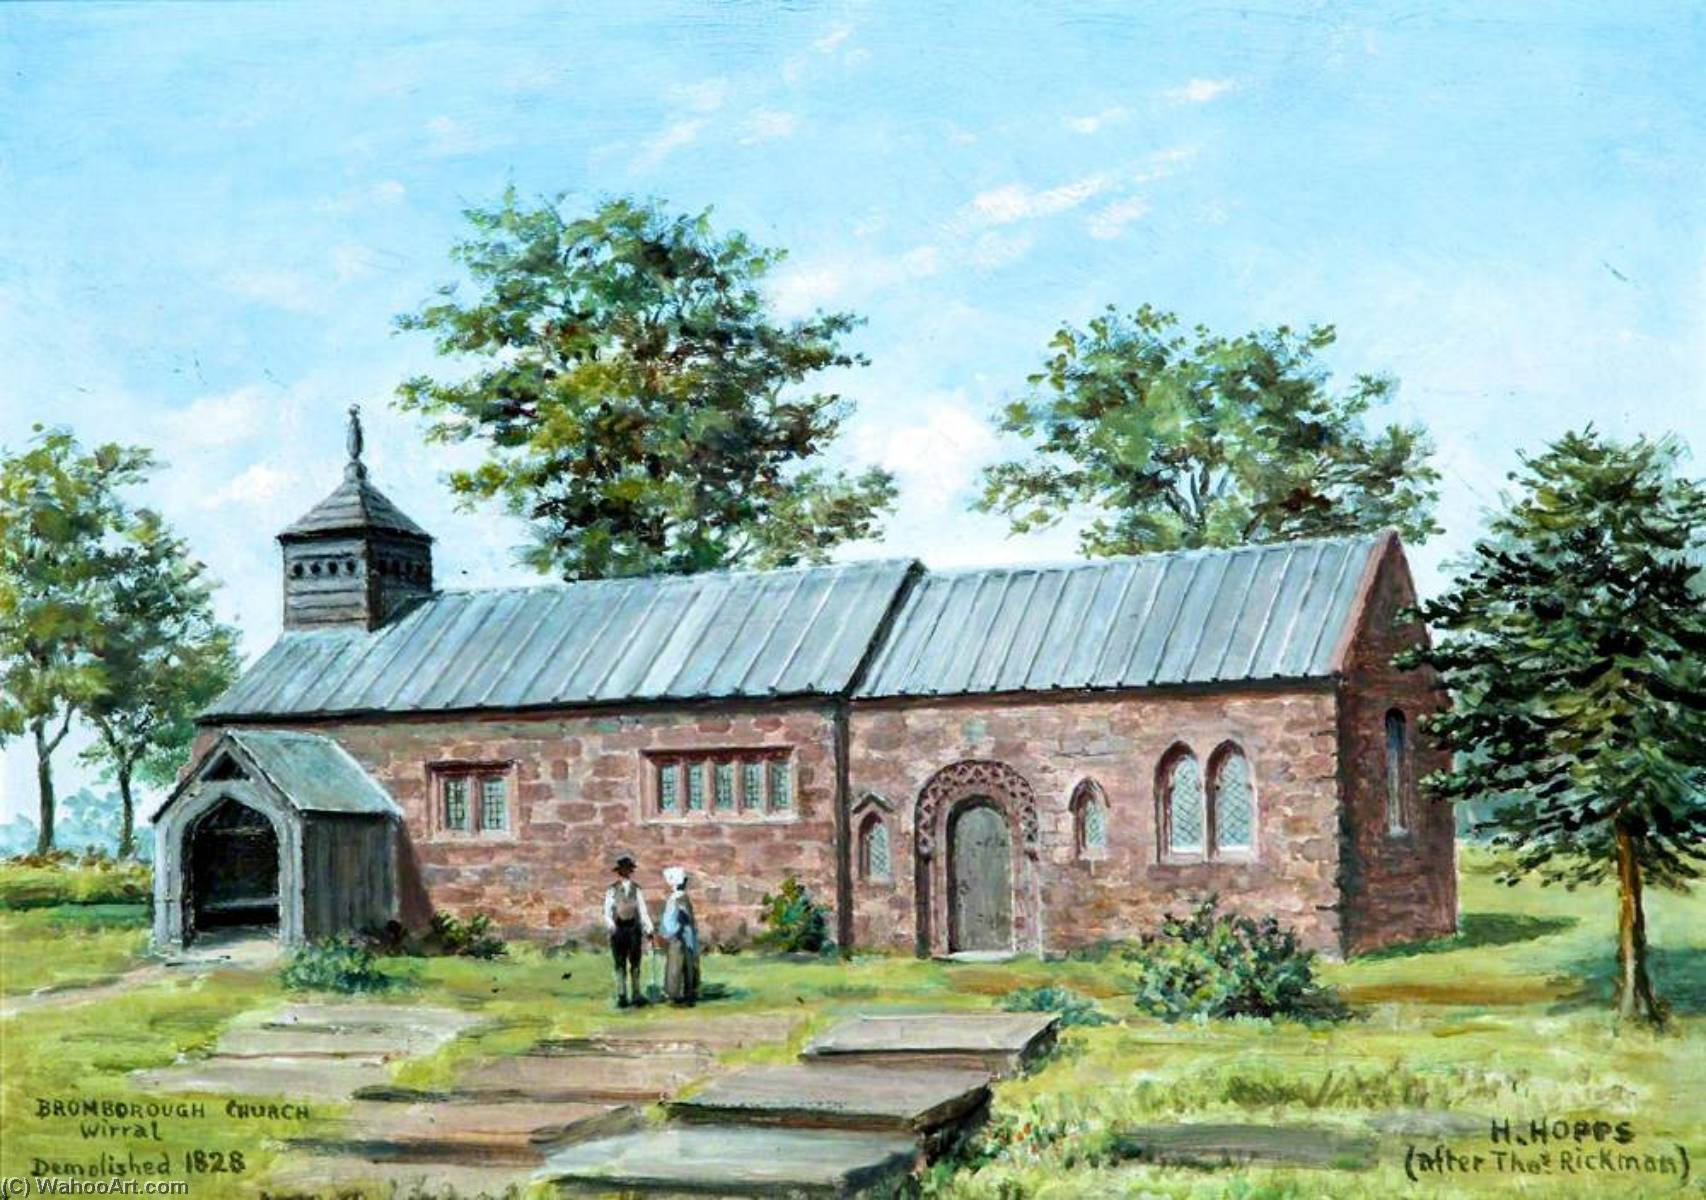 Bromborough Church, Wirral by Harold Hopps | Oil Painting | ArtsDot.com